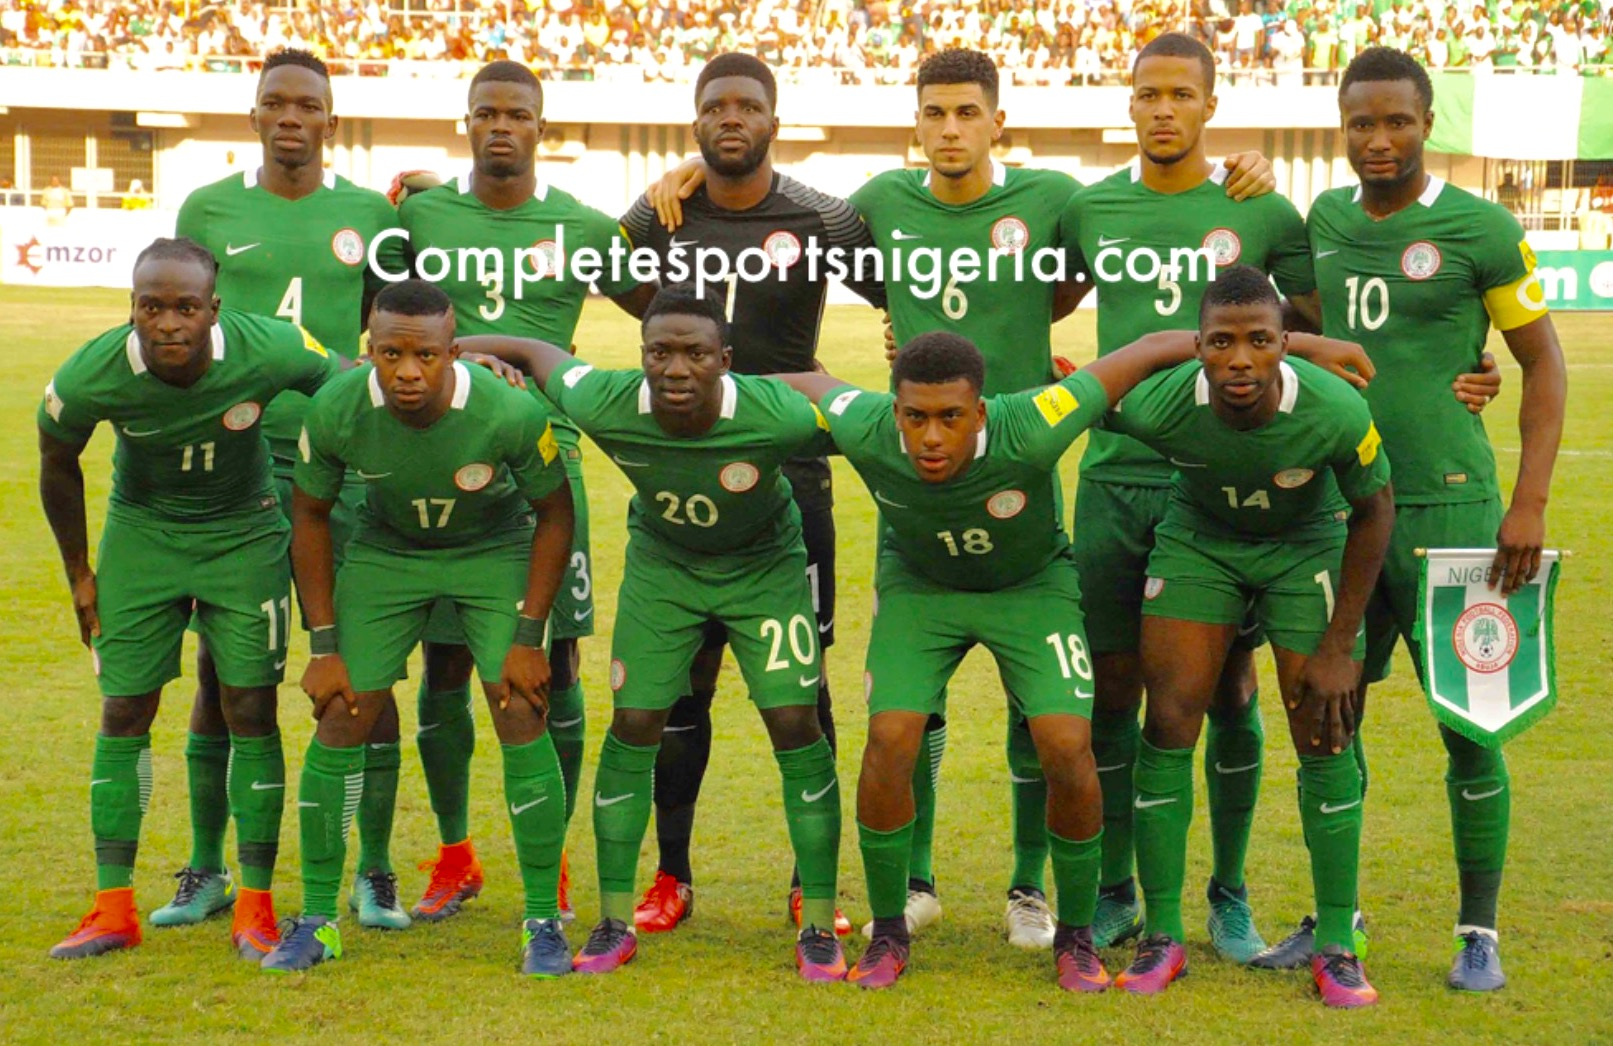 Super Eagles To Wear Black Armbands Vs Senegal In Honour Of Westminster Terror Attack Victims